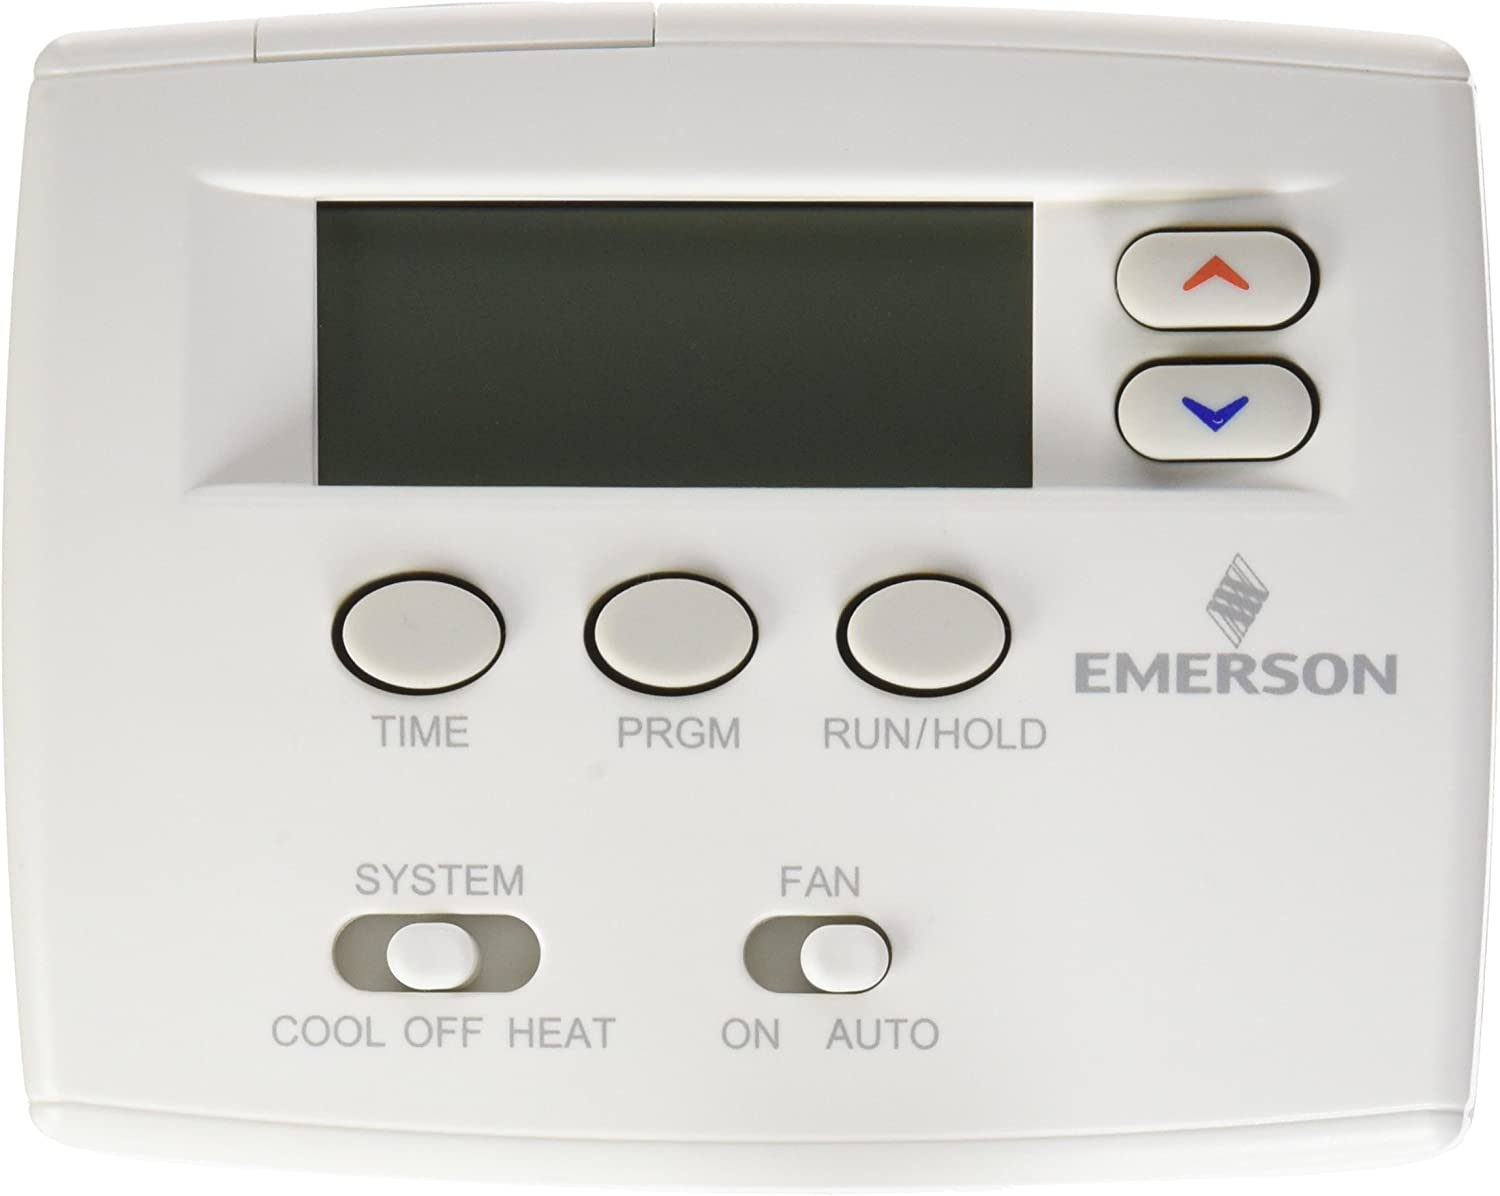 Emerson 1F80-0261 Single Stage 5/1/1 Programmable Digital Thermostat